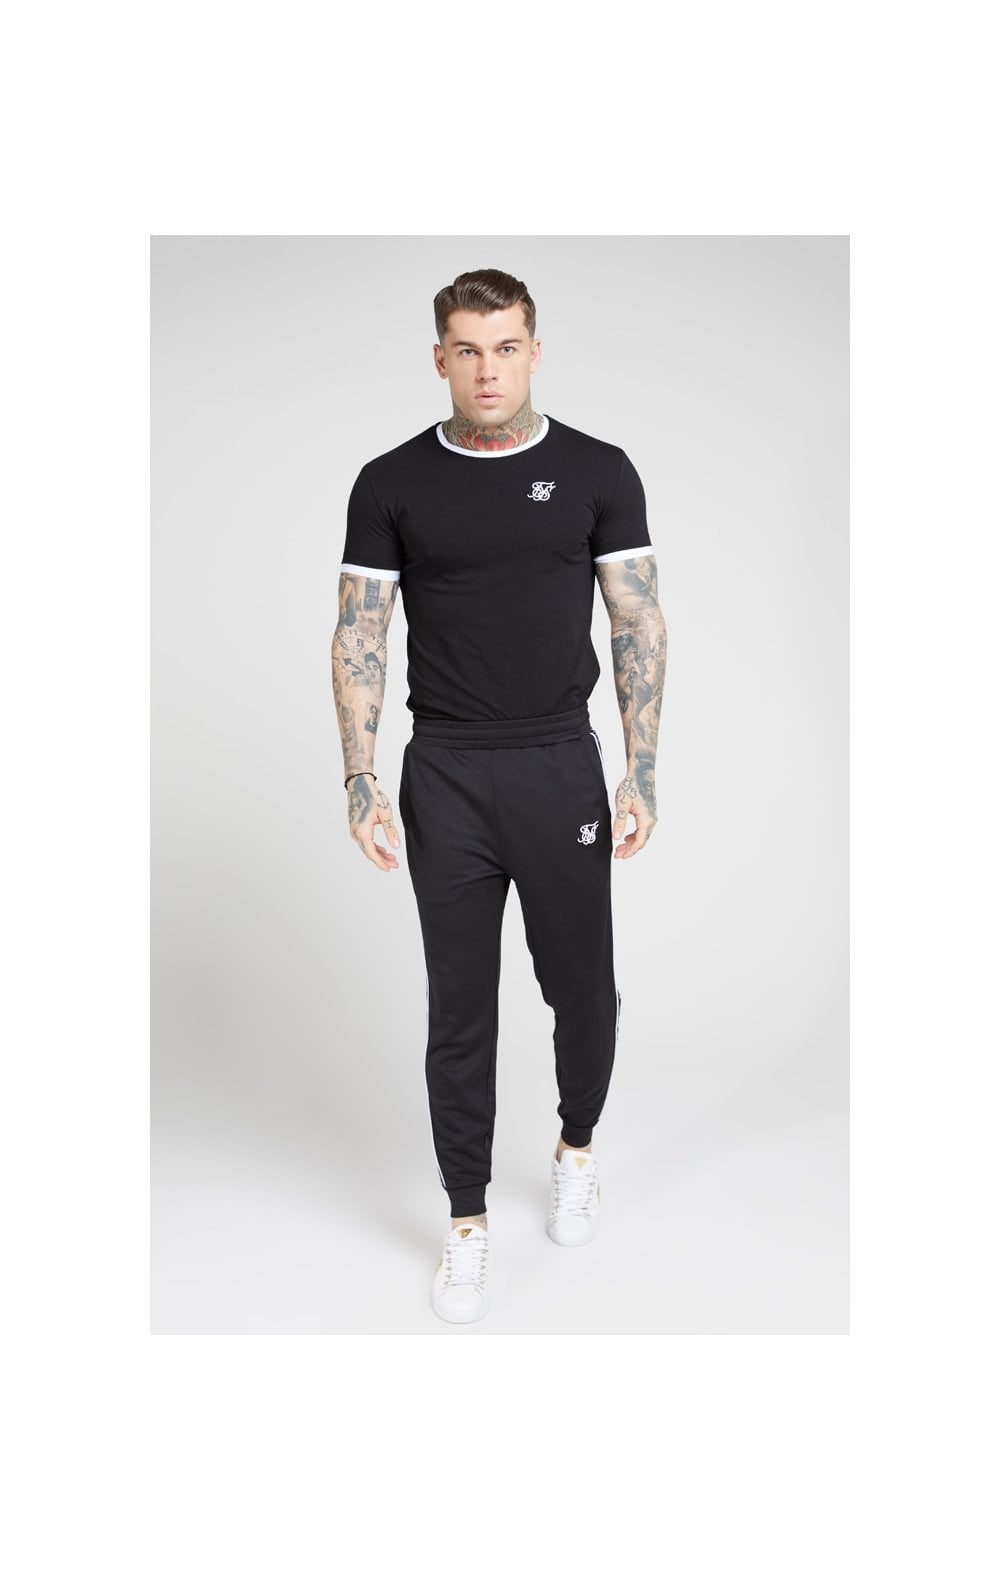 SikSilk S/S Inset Straight Hem Ringer Gym Tee – Black & White (2)